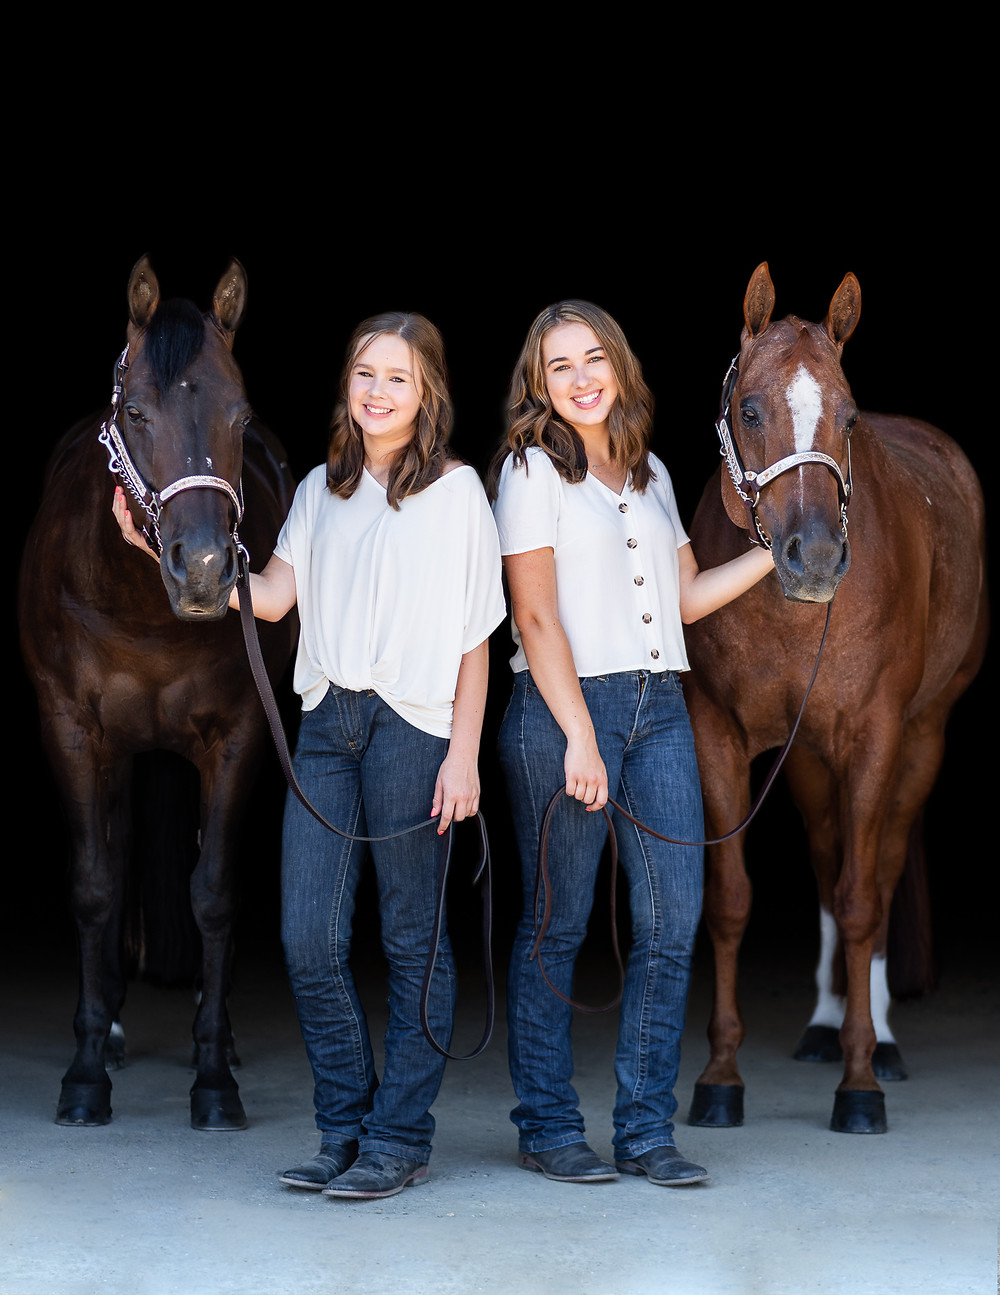 The girls and their horses